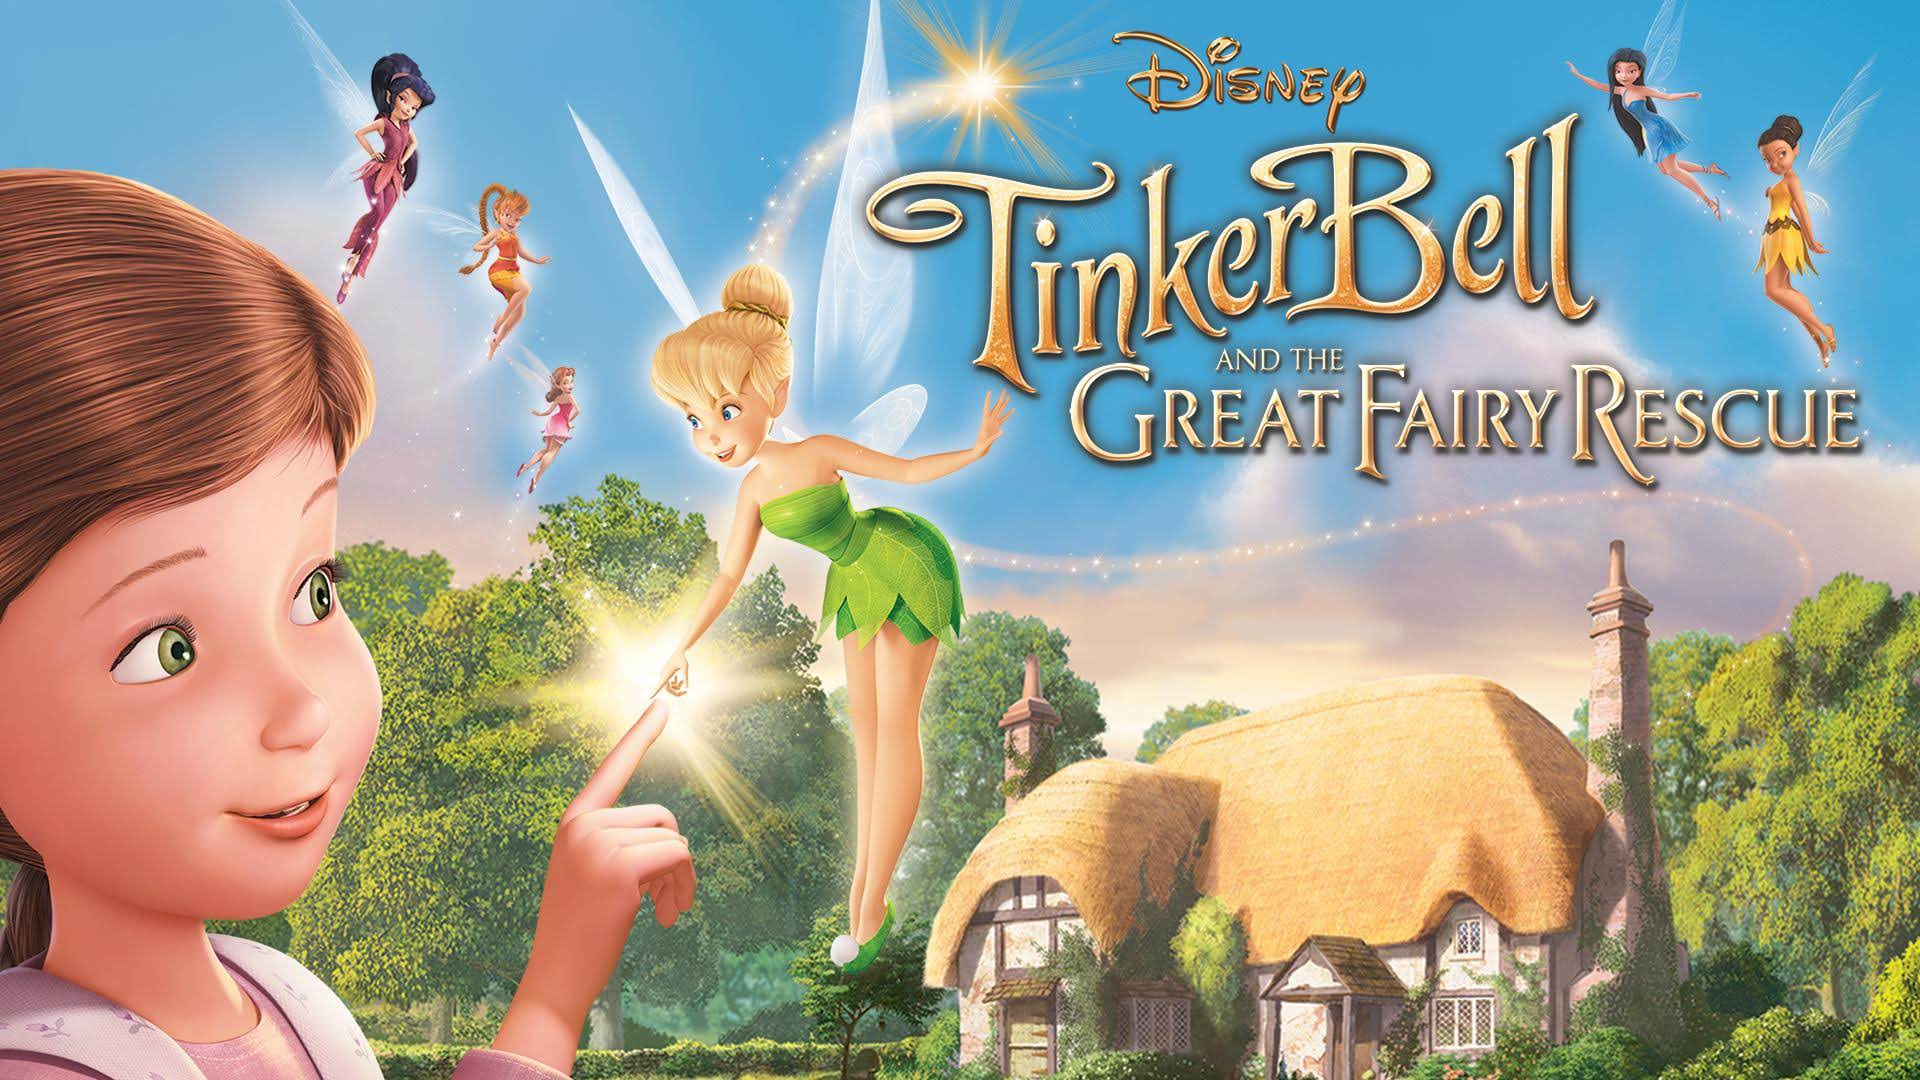 Tinkerbell and the Fairy Rescue (2010)